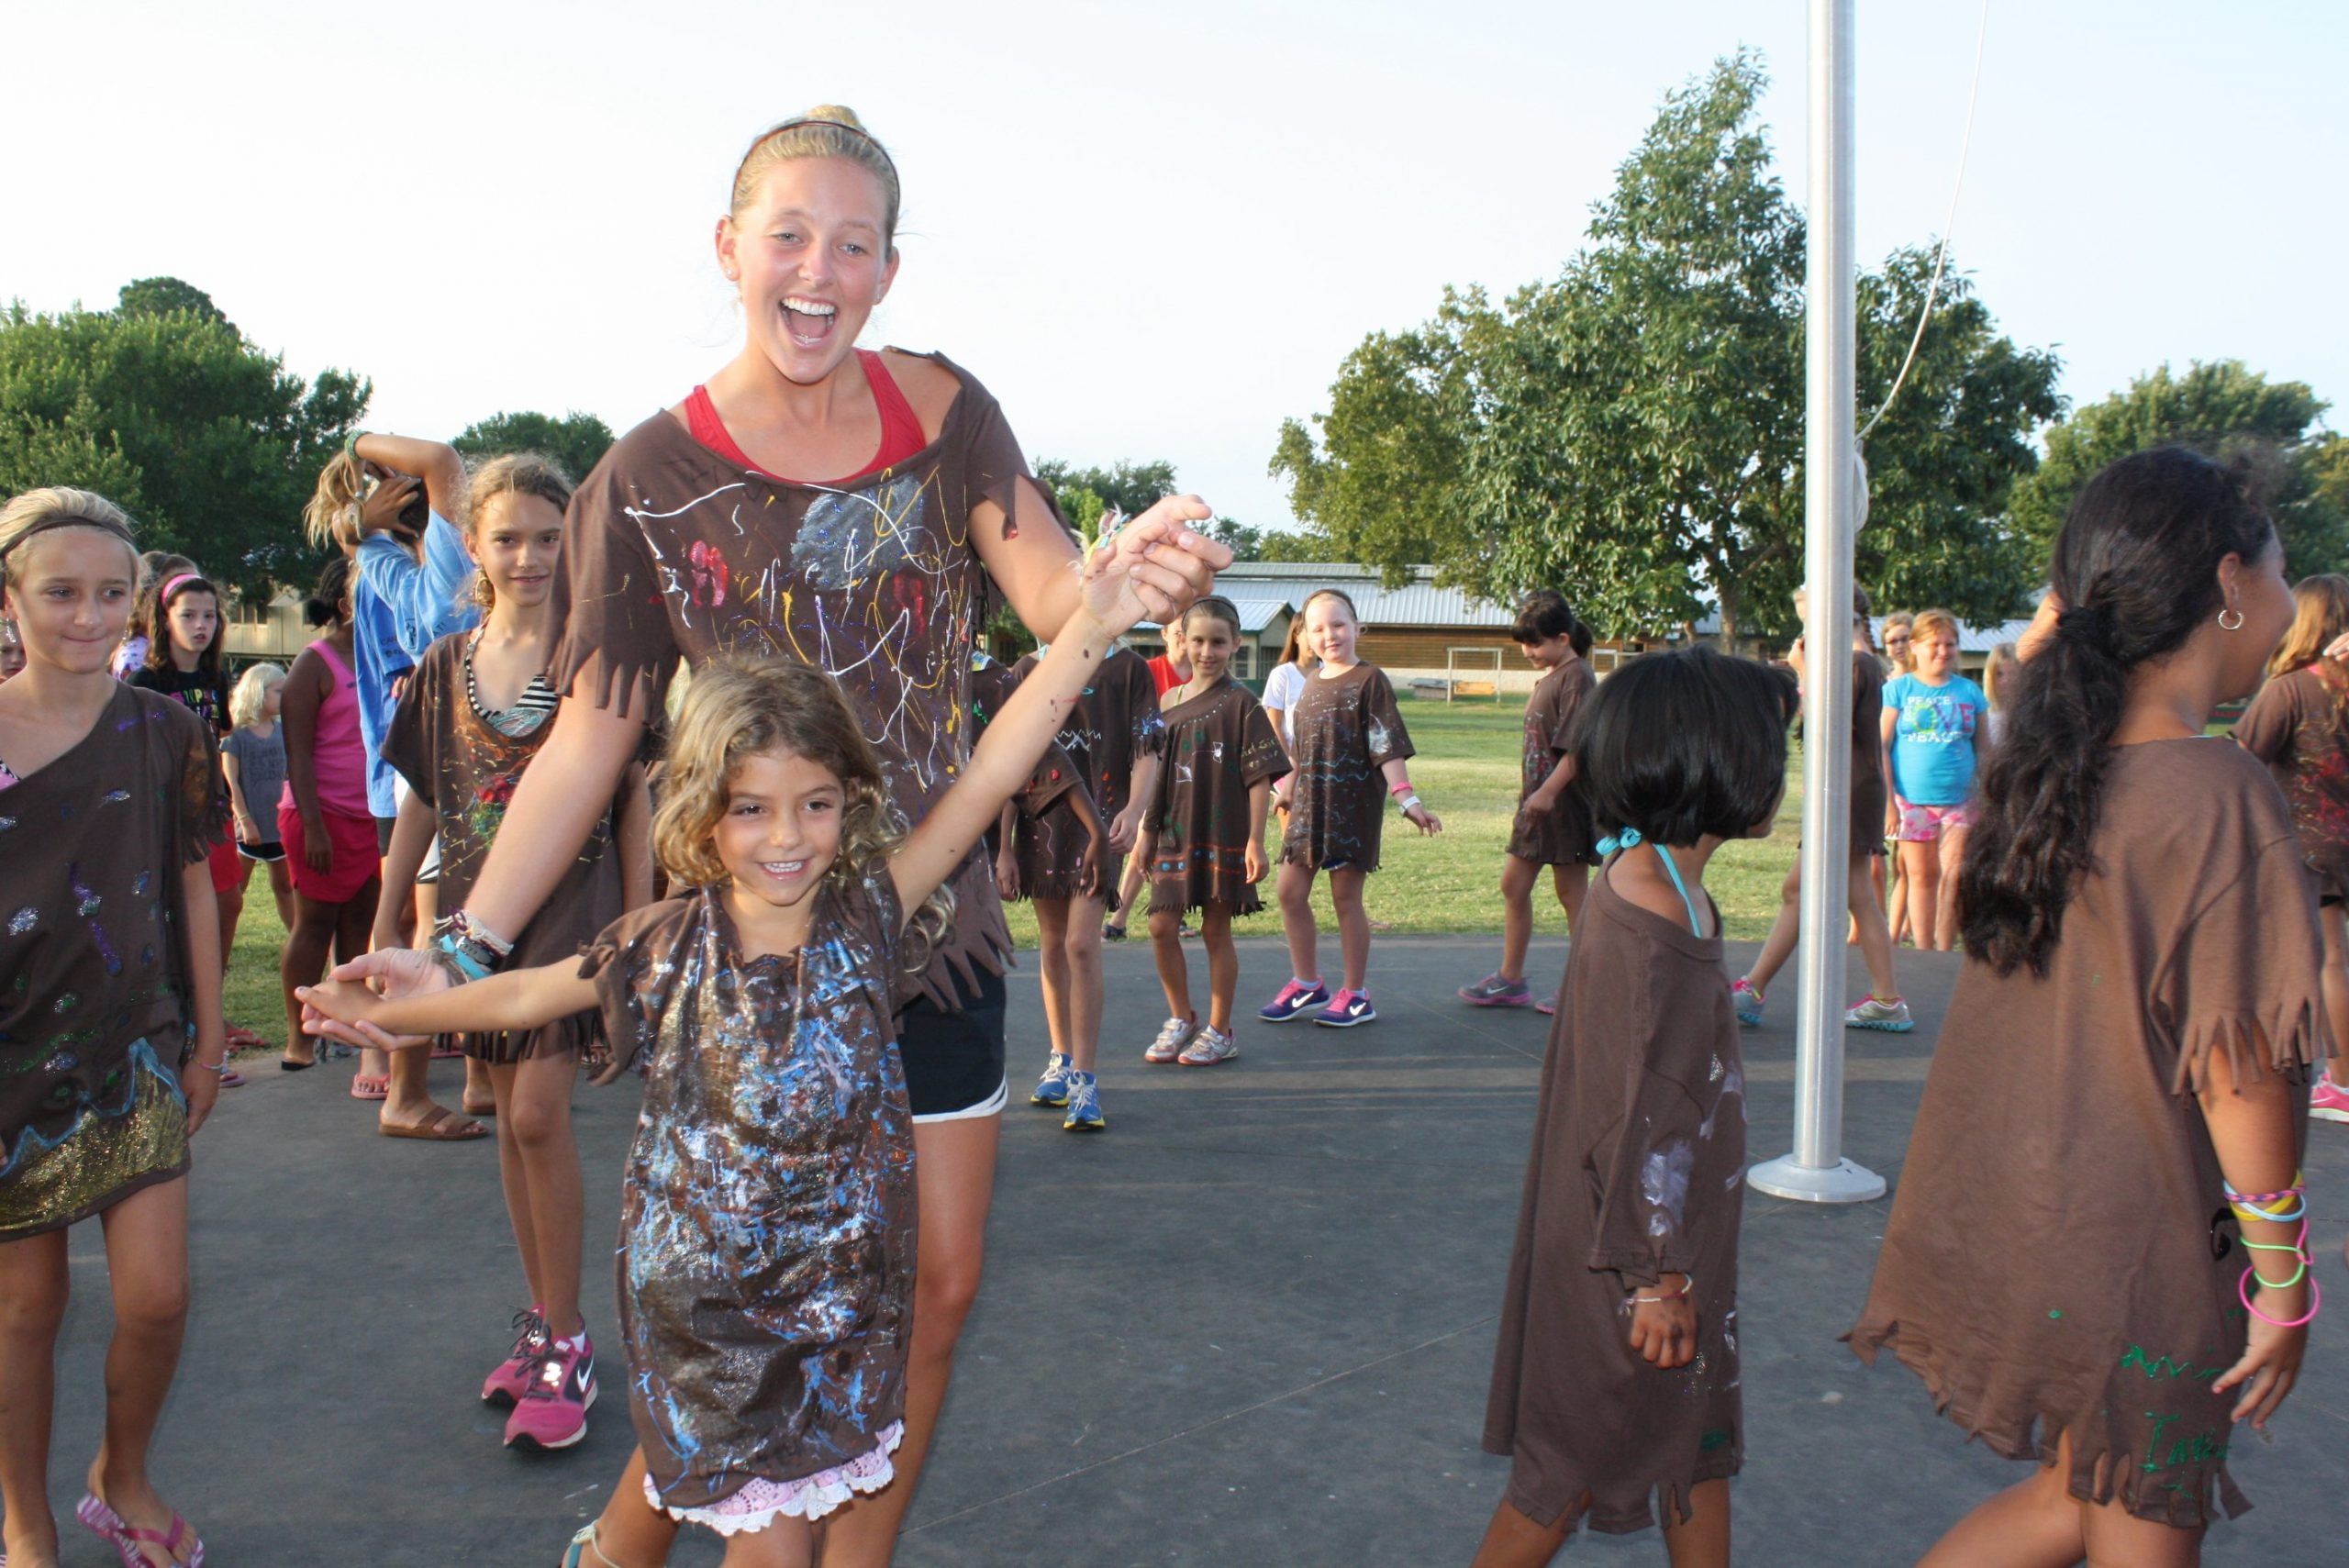 Summer Season Camps MetroFamily Publication